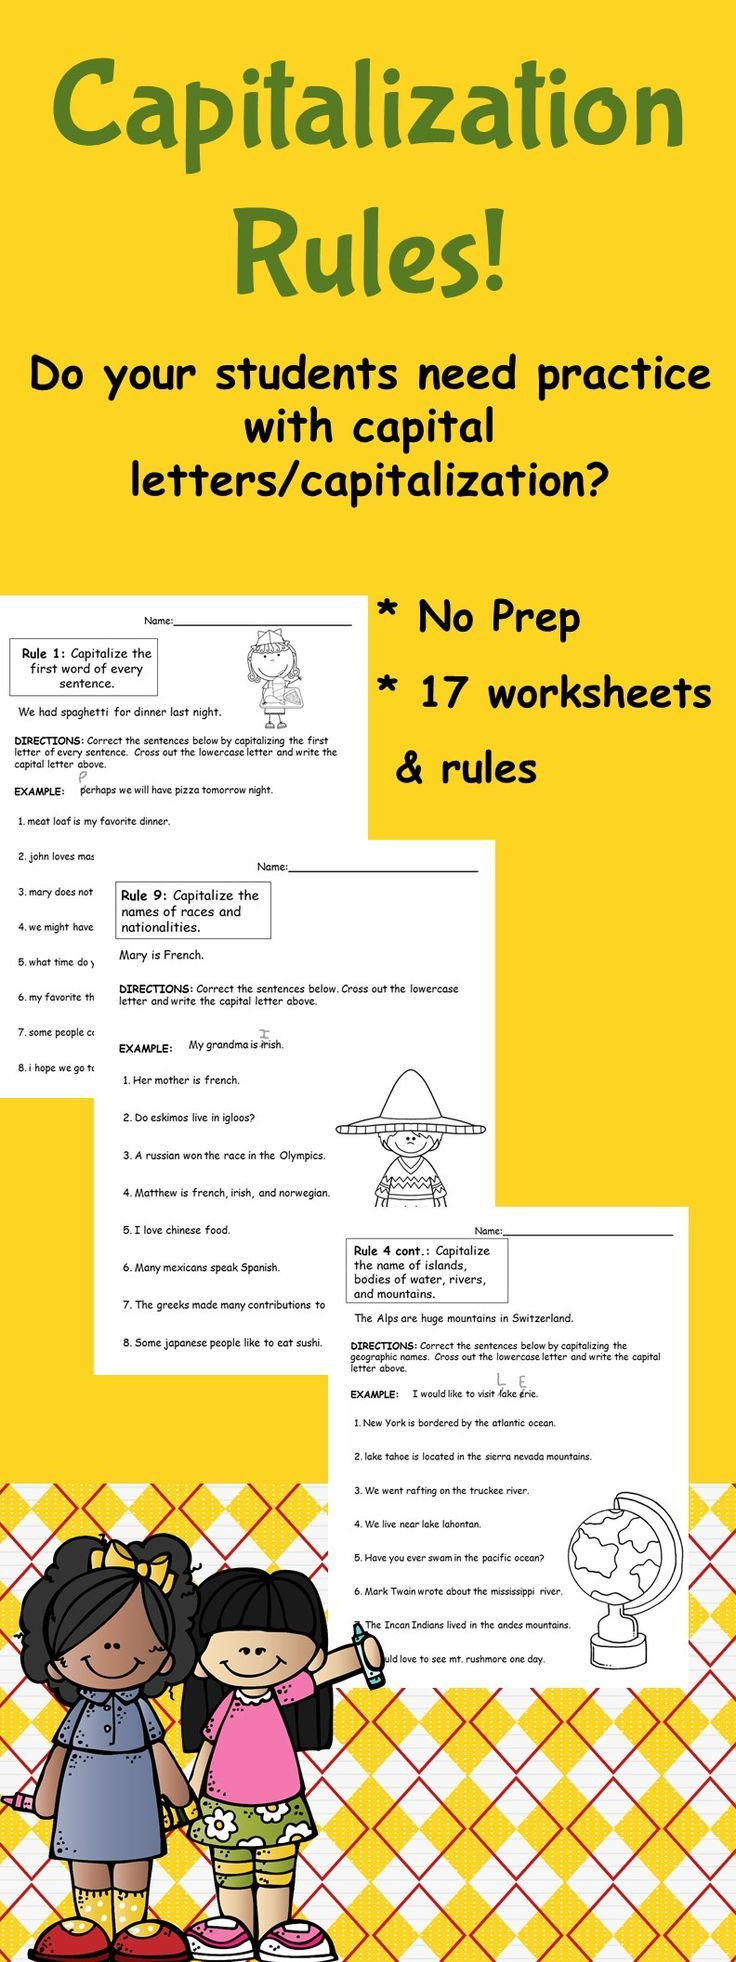 Workbooks willy the wimp worksheets : 18 best Balanced Literacy images on Pinterest   Teaching reading ...